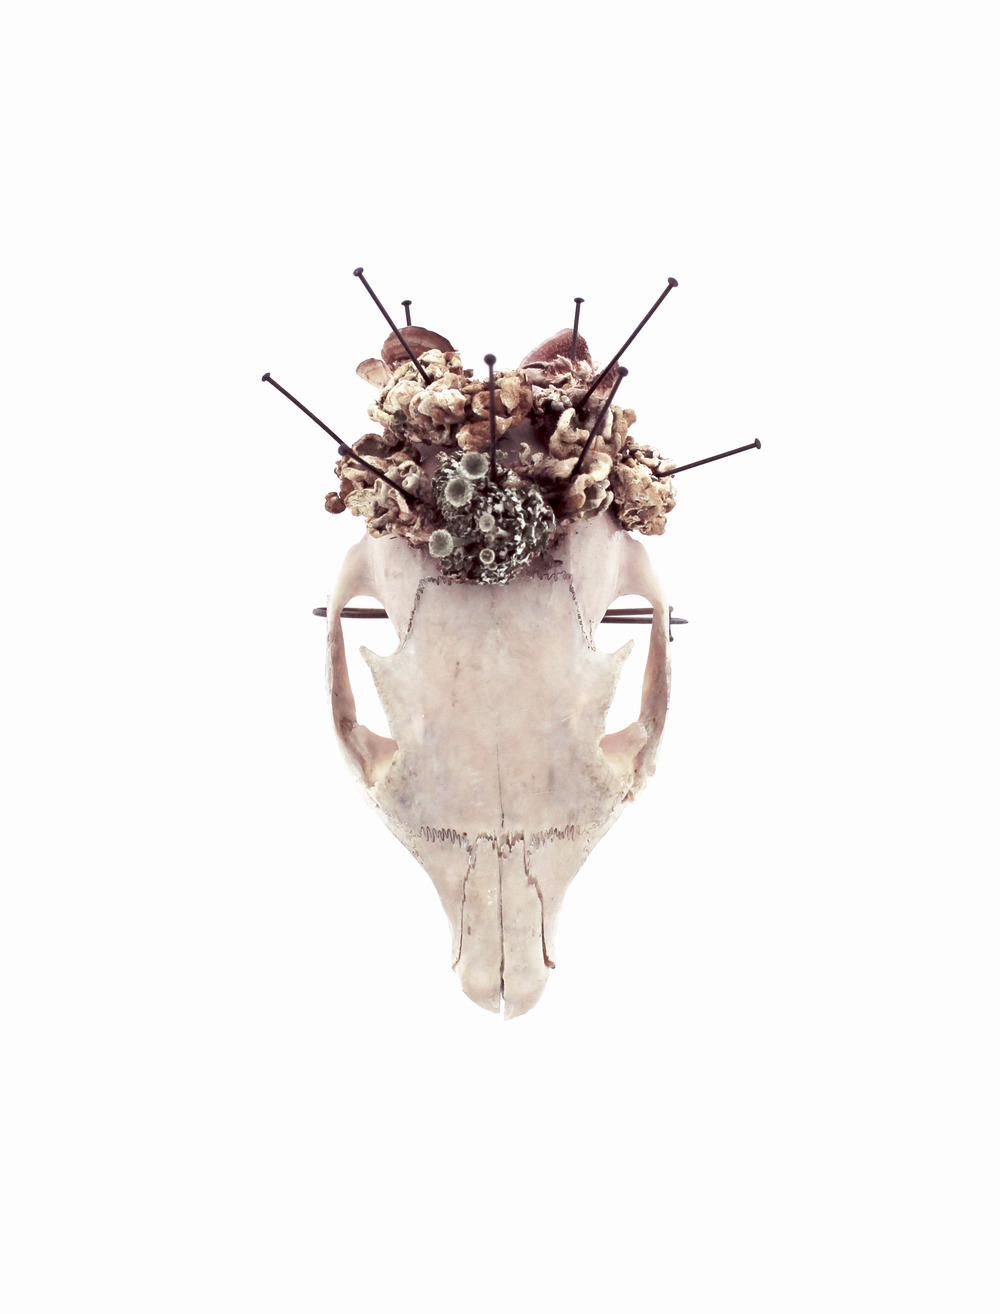 Royal Mourning  squirrel skull, lichen, mushrooms, insect pins, steel 2014